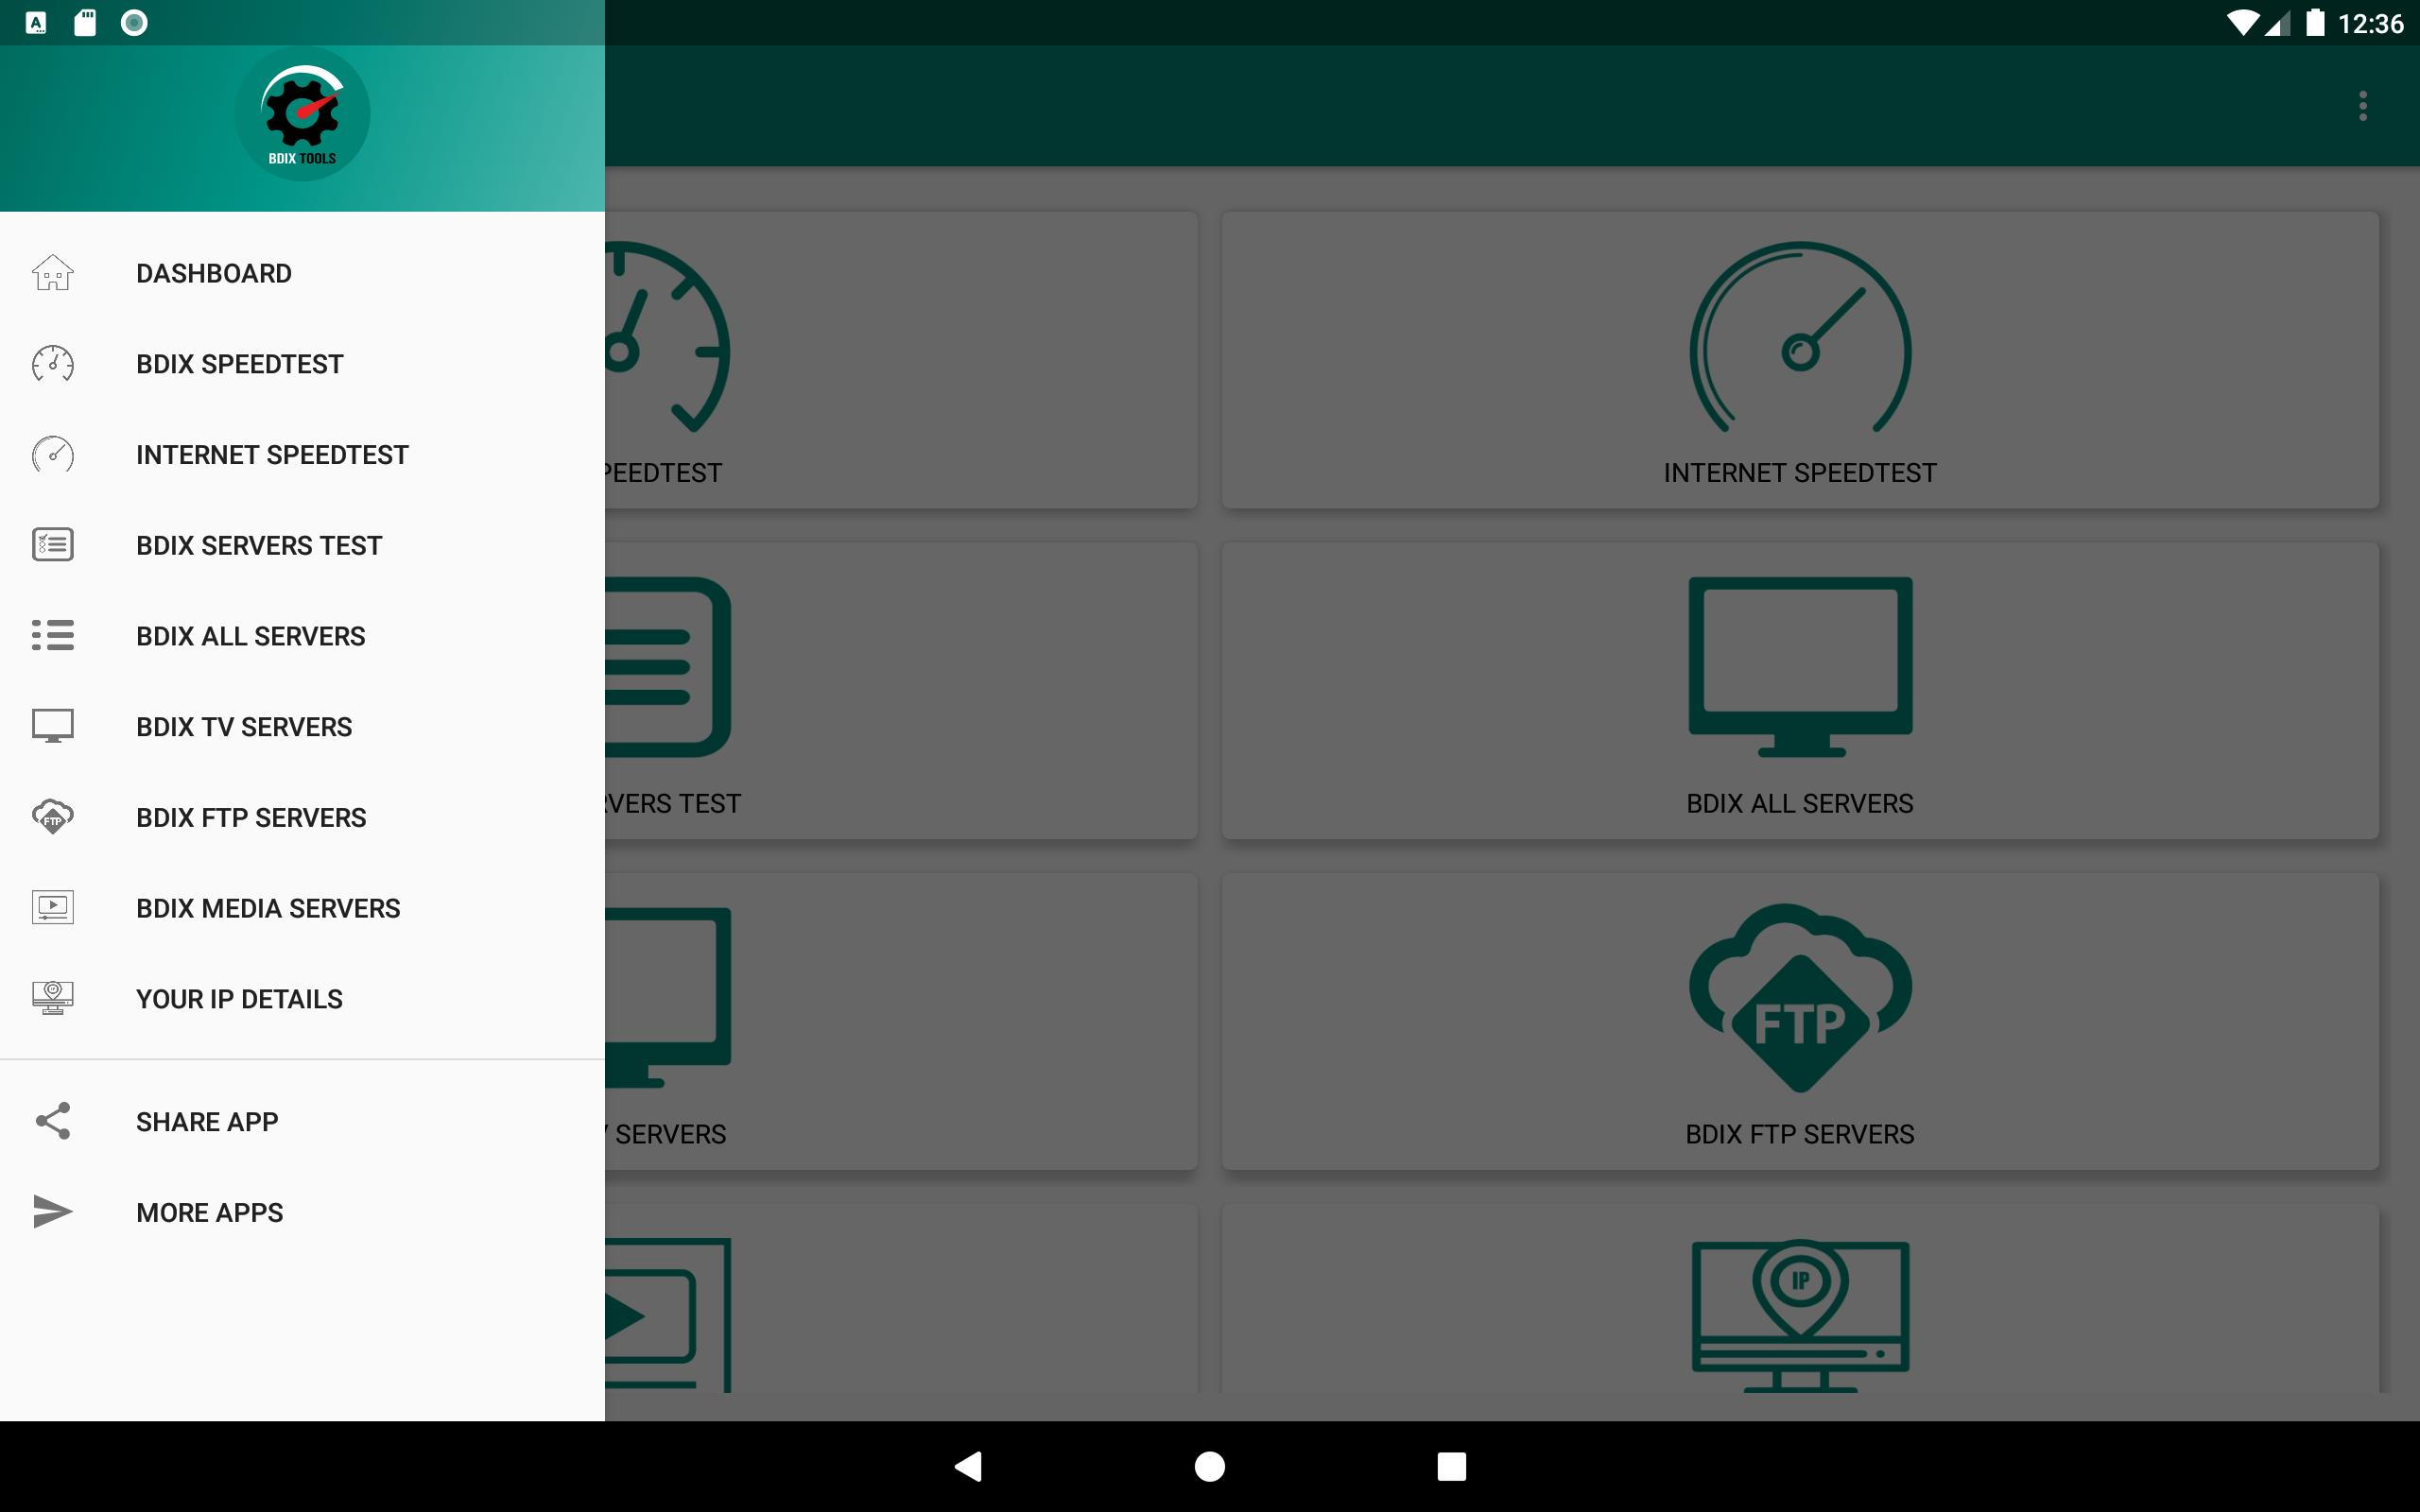 BDIX TOOLS - TV | FTP | MEDIA SERVERS, SPEED TEST for Android - APK